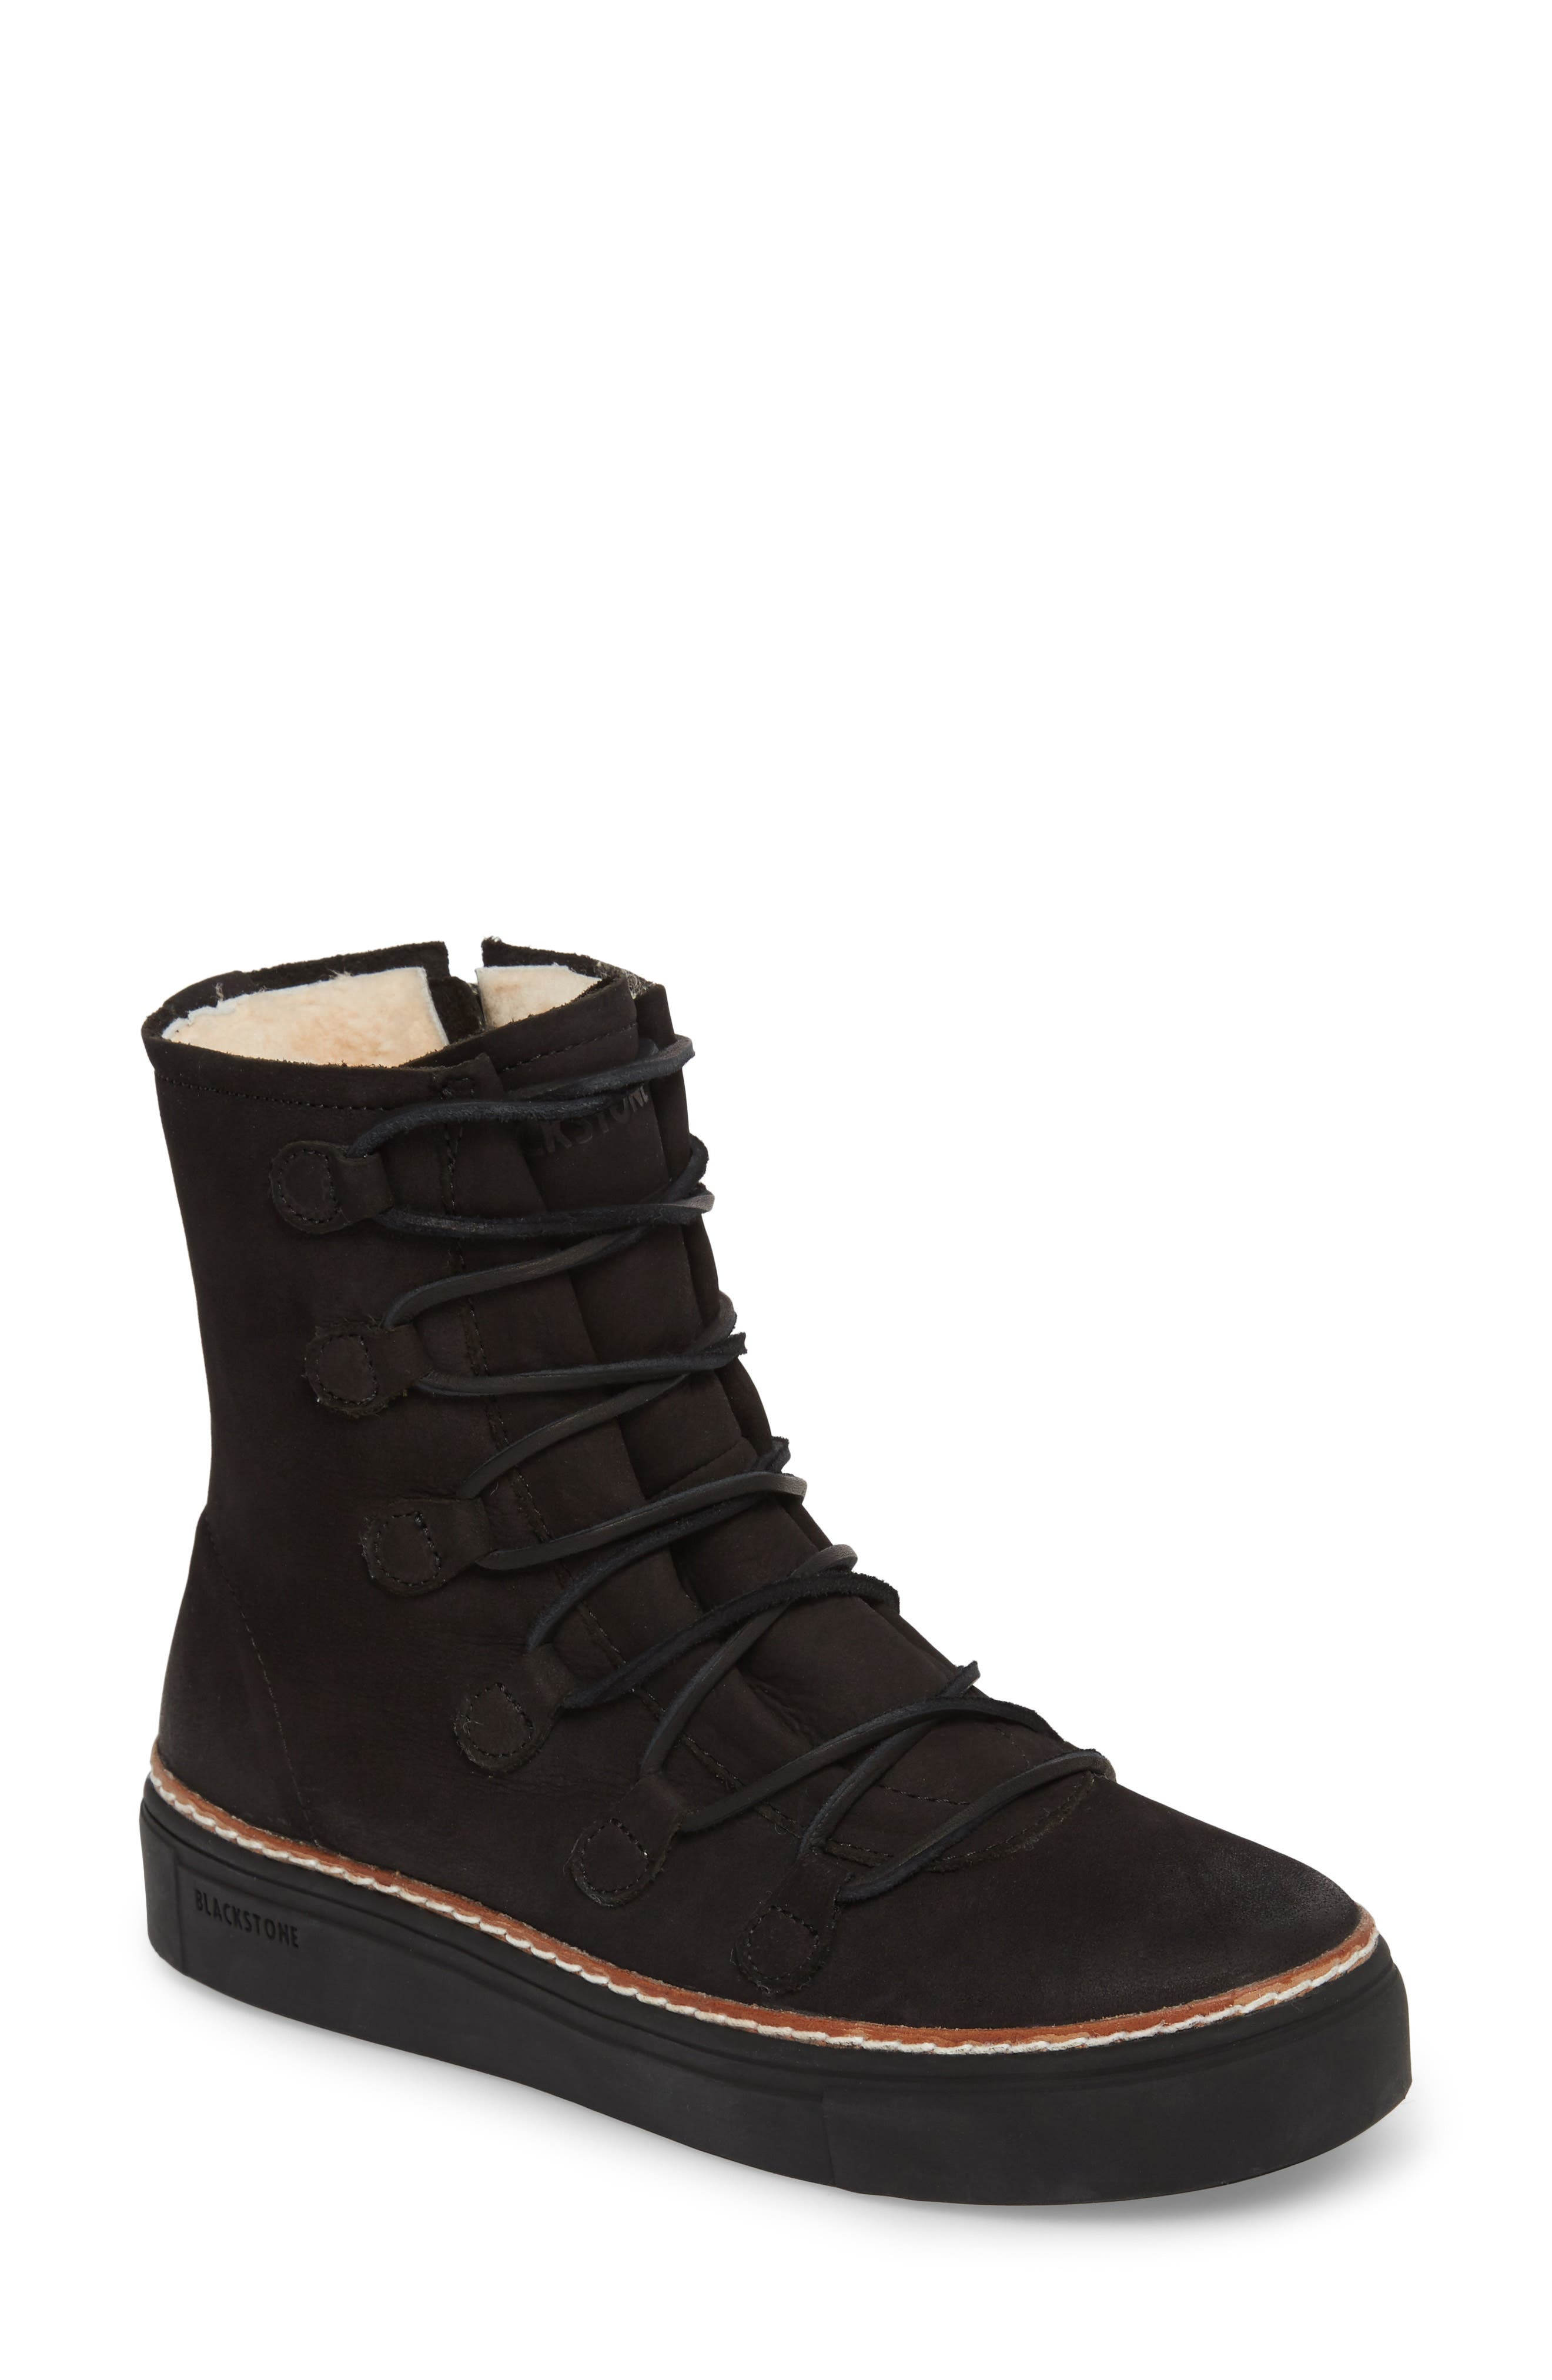 OL26 Genuine Shearling Lined Lace-Up Bootie,                             Main thumbnail 1, color,                             Black Nubuck Leather